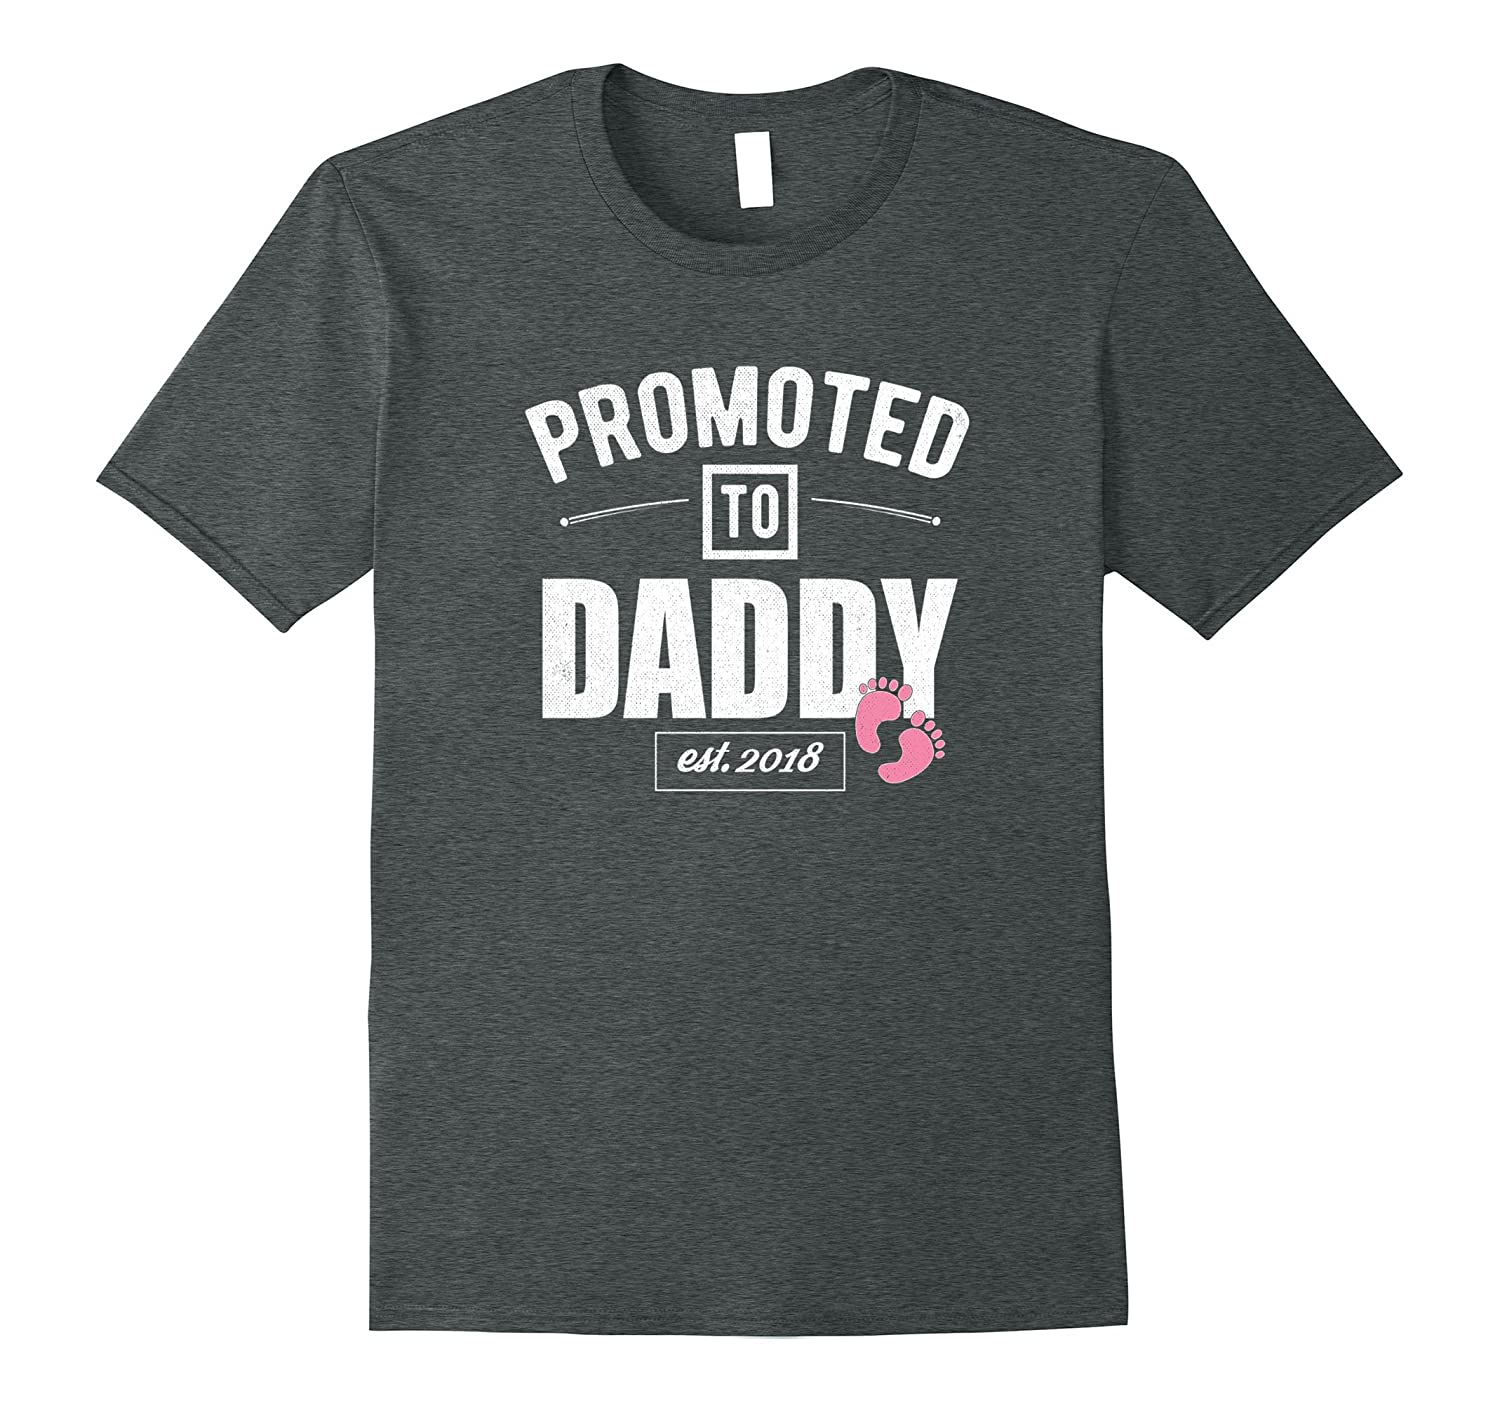 30c88ab1 Mens Vintage Promoted to Daddy Its a Girl 2018 New Dad Tshirt-ah my shirt